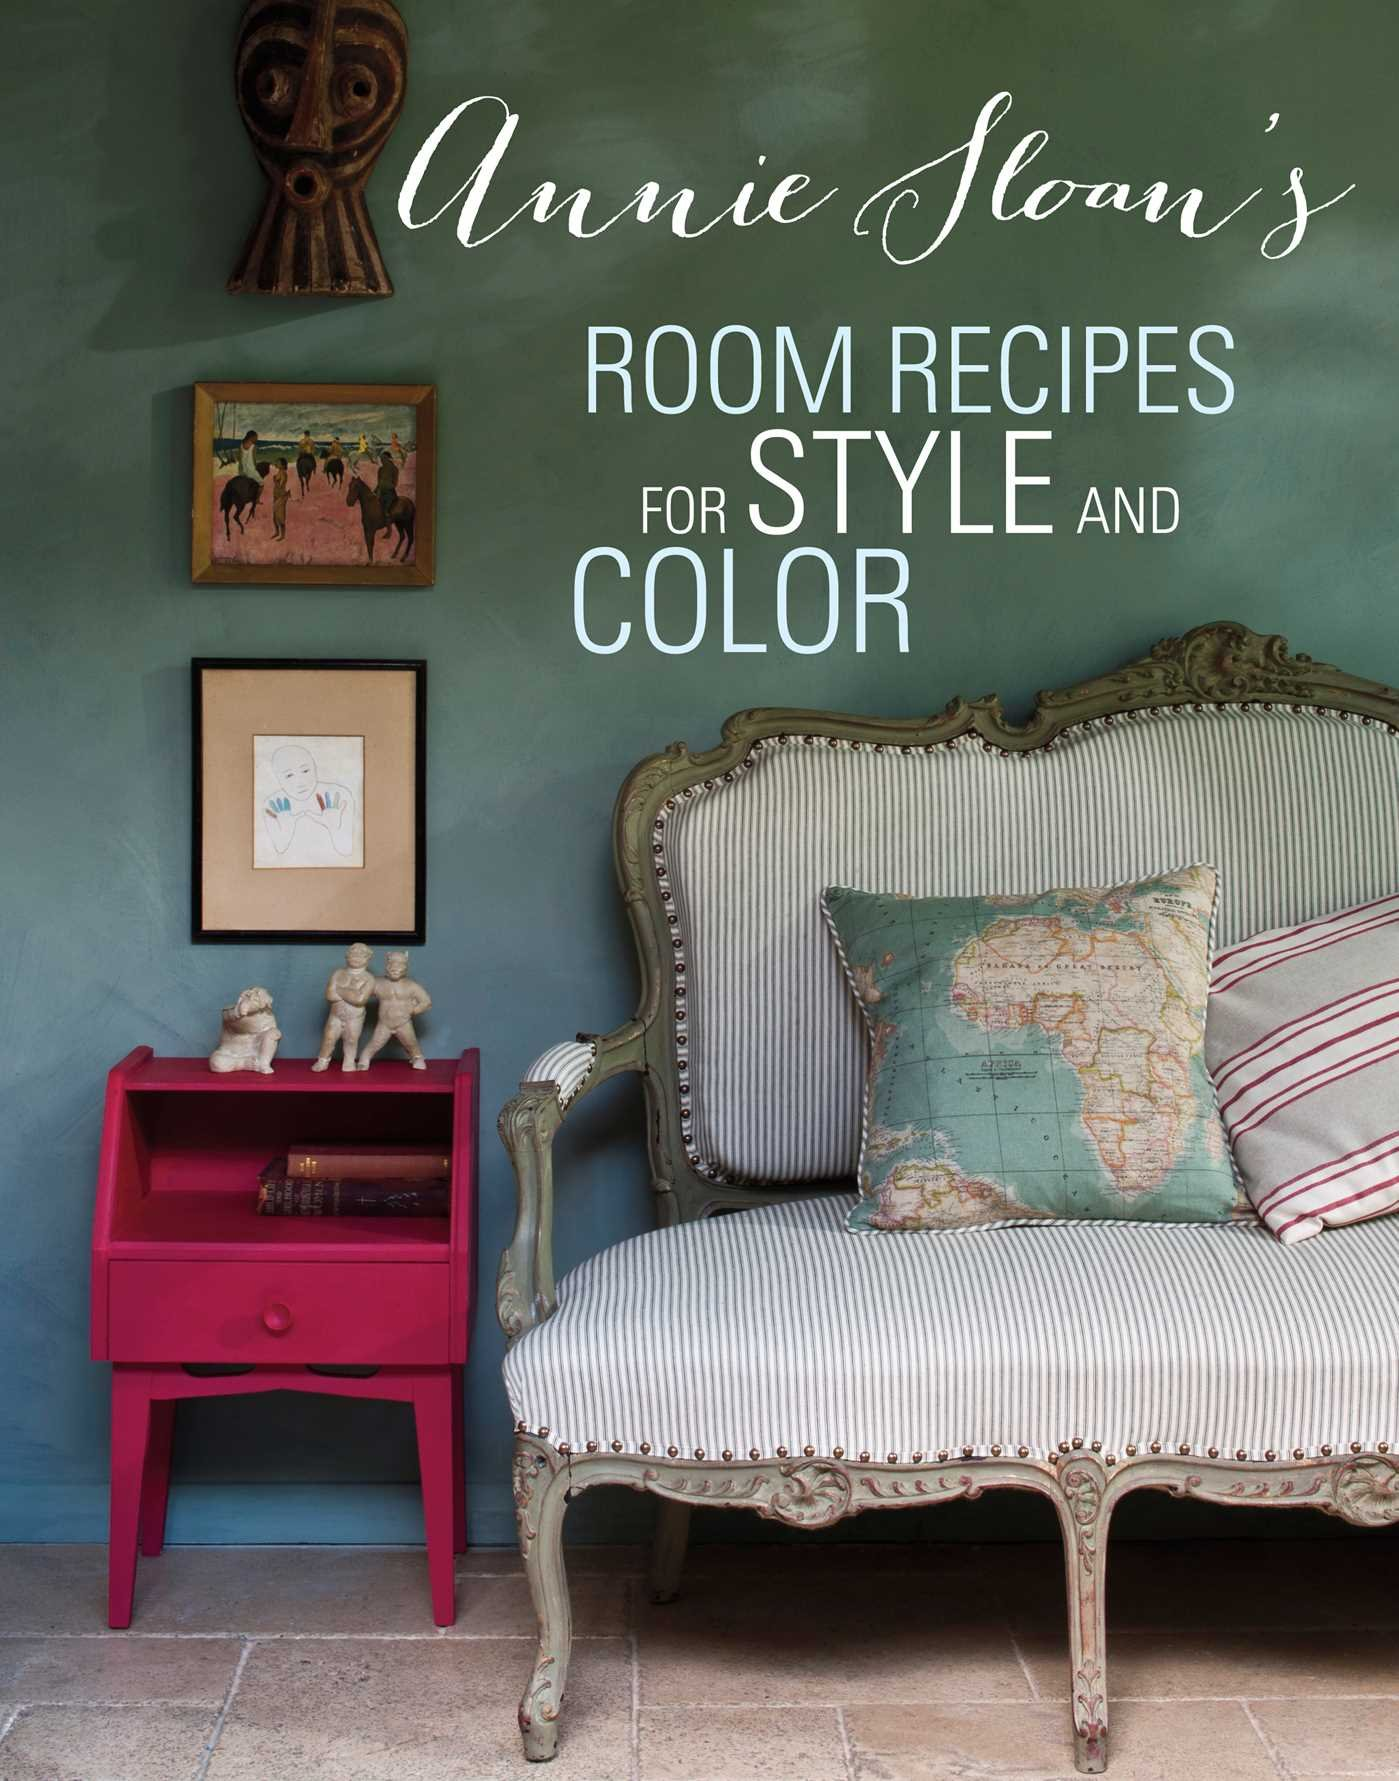 Annie Sloans Recipes Style Color product image